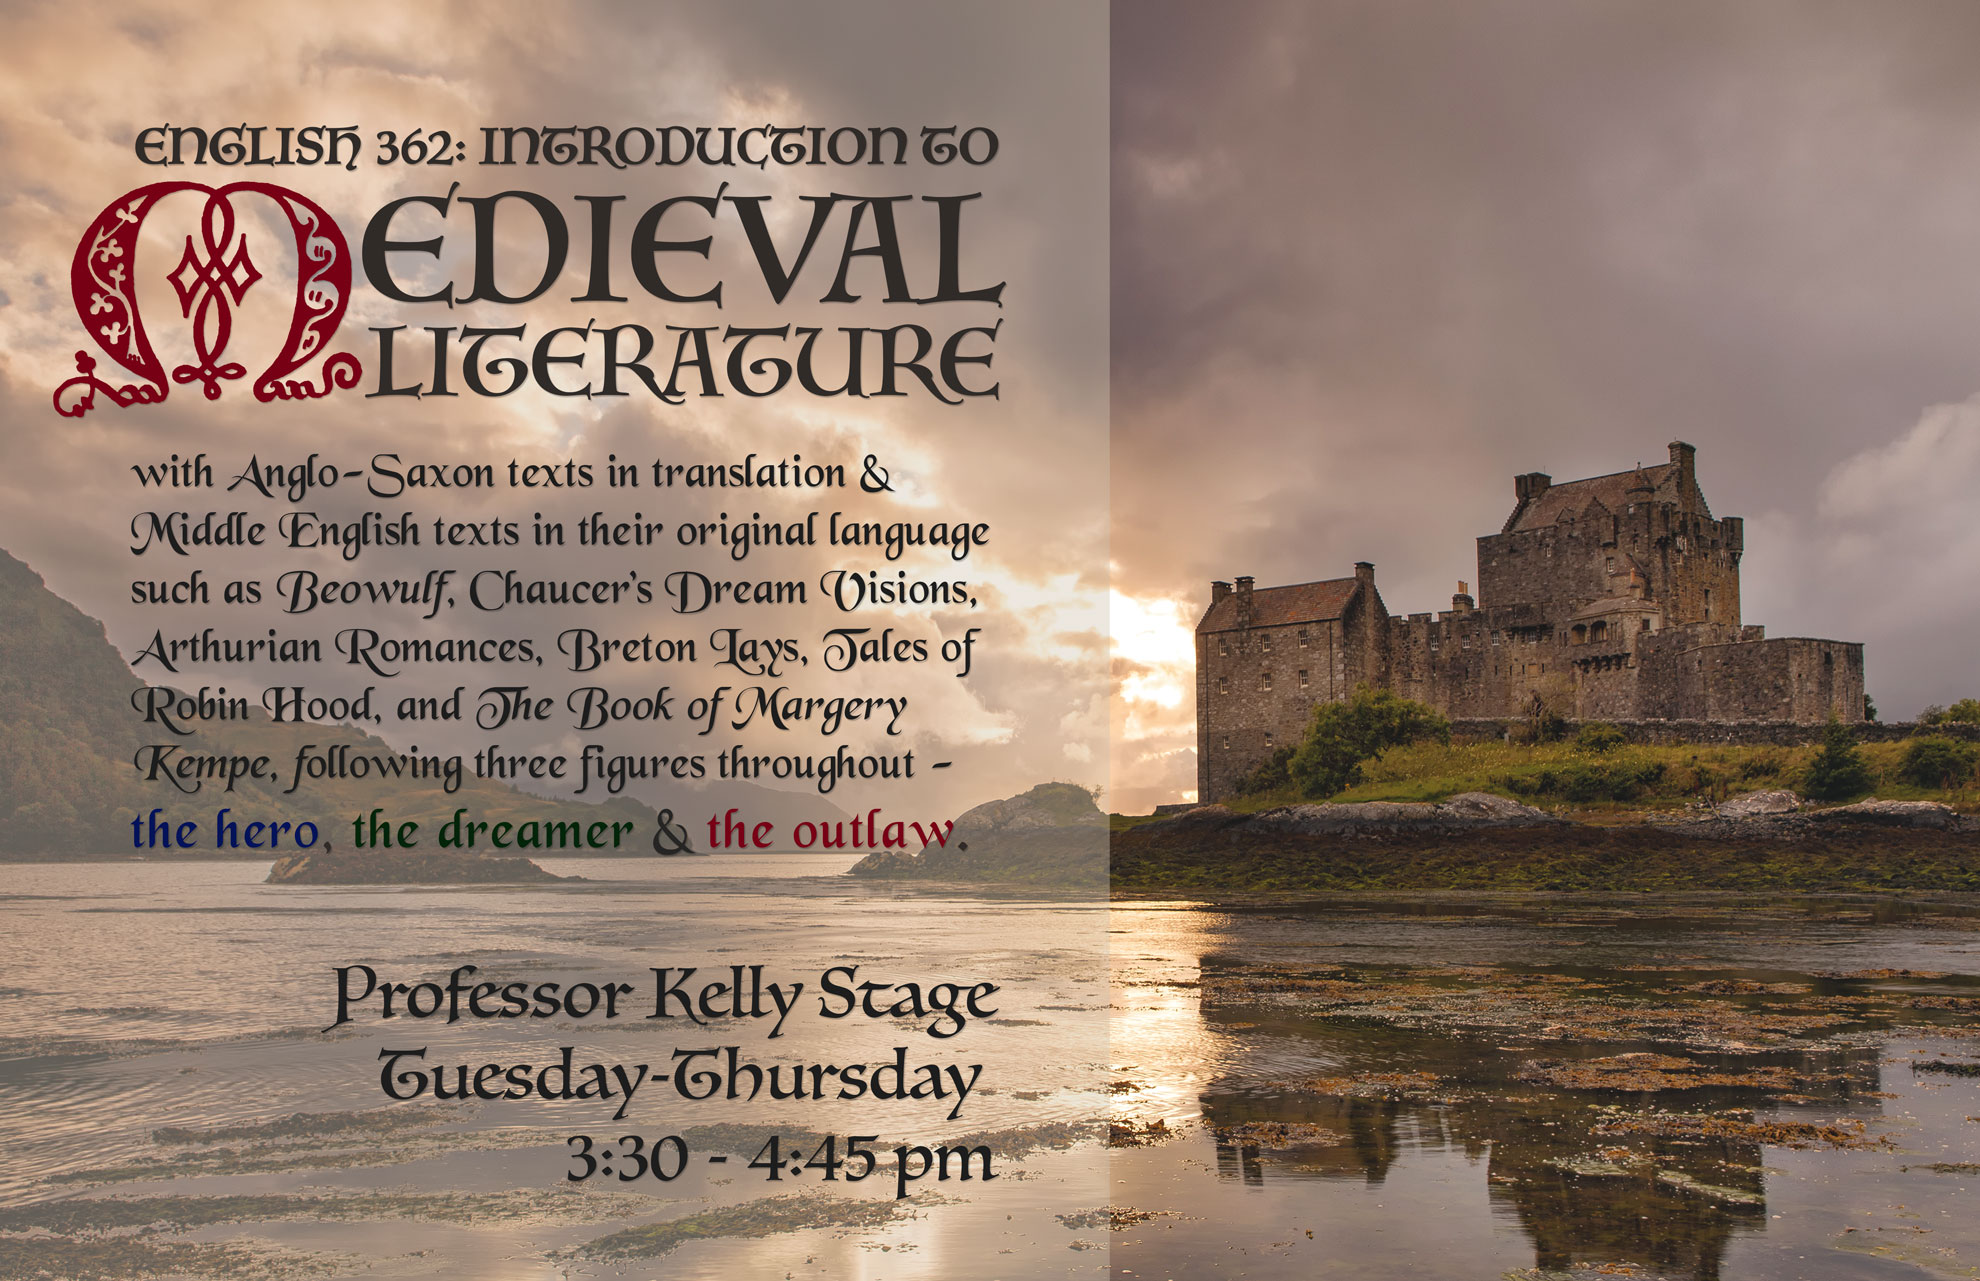 Course poster for Intro to Medieval Lit, Fall 2015, Professor Kelly Stage